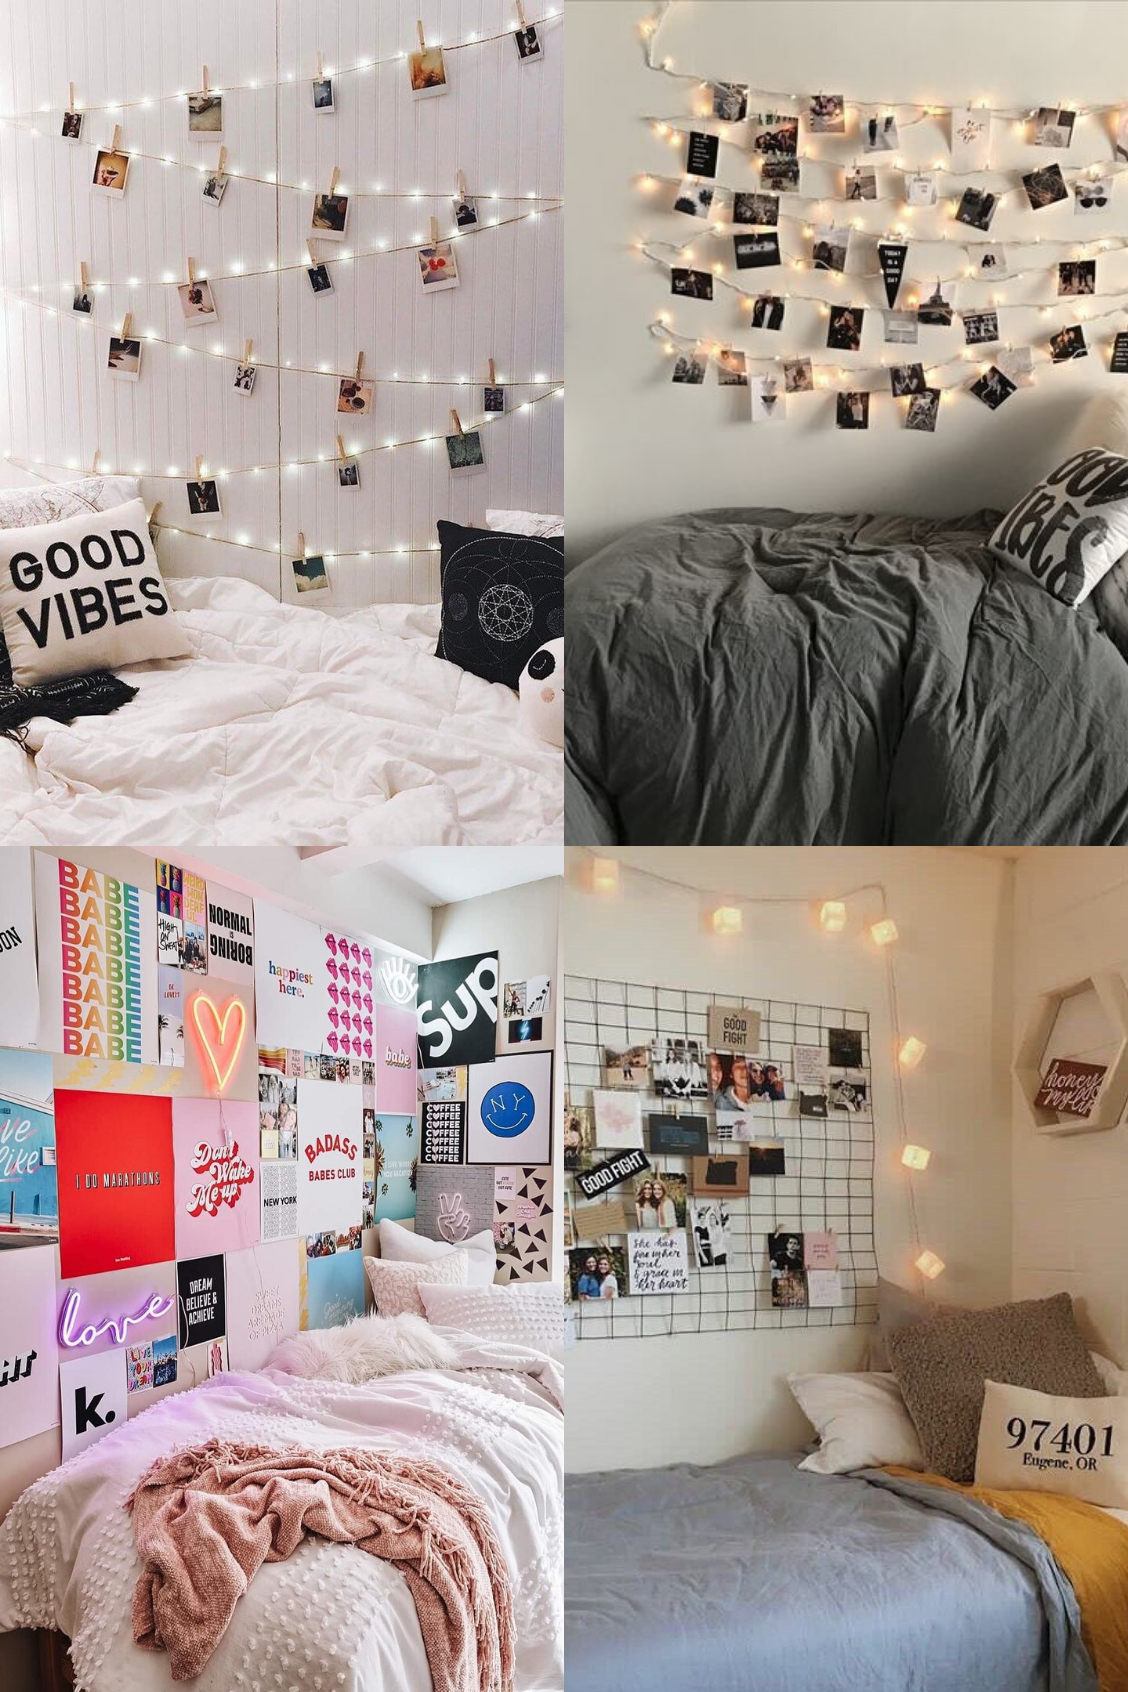 10 Photo Wall Collage Ideas for Your Bedroom - Its Claudia ...